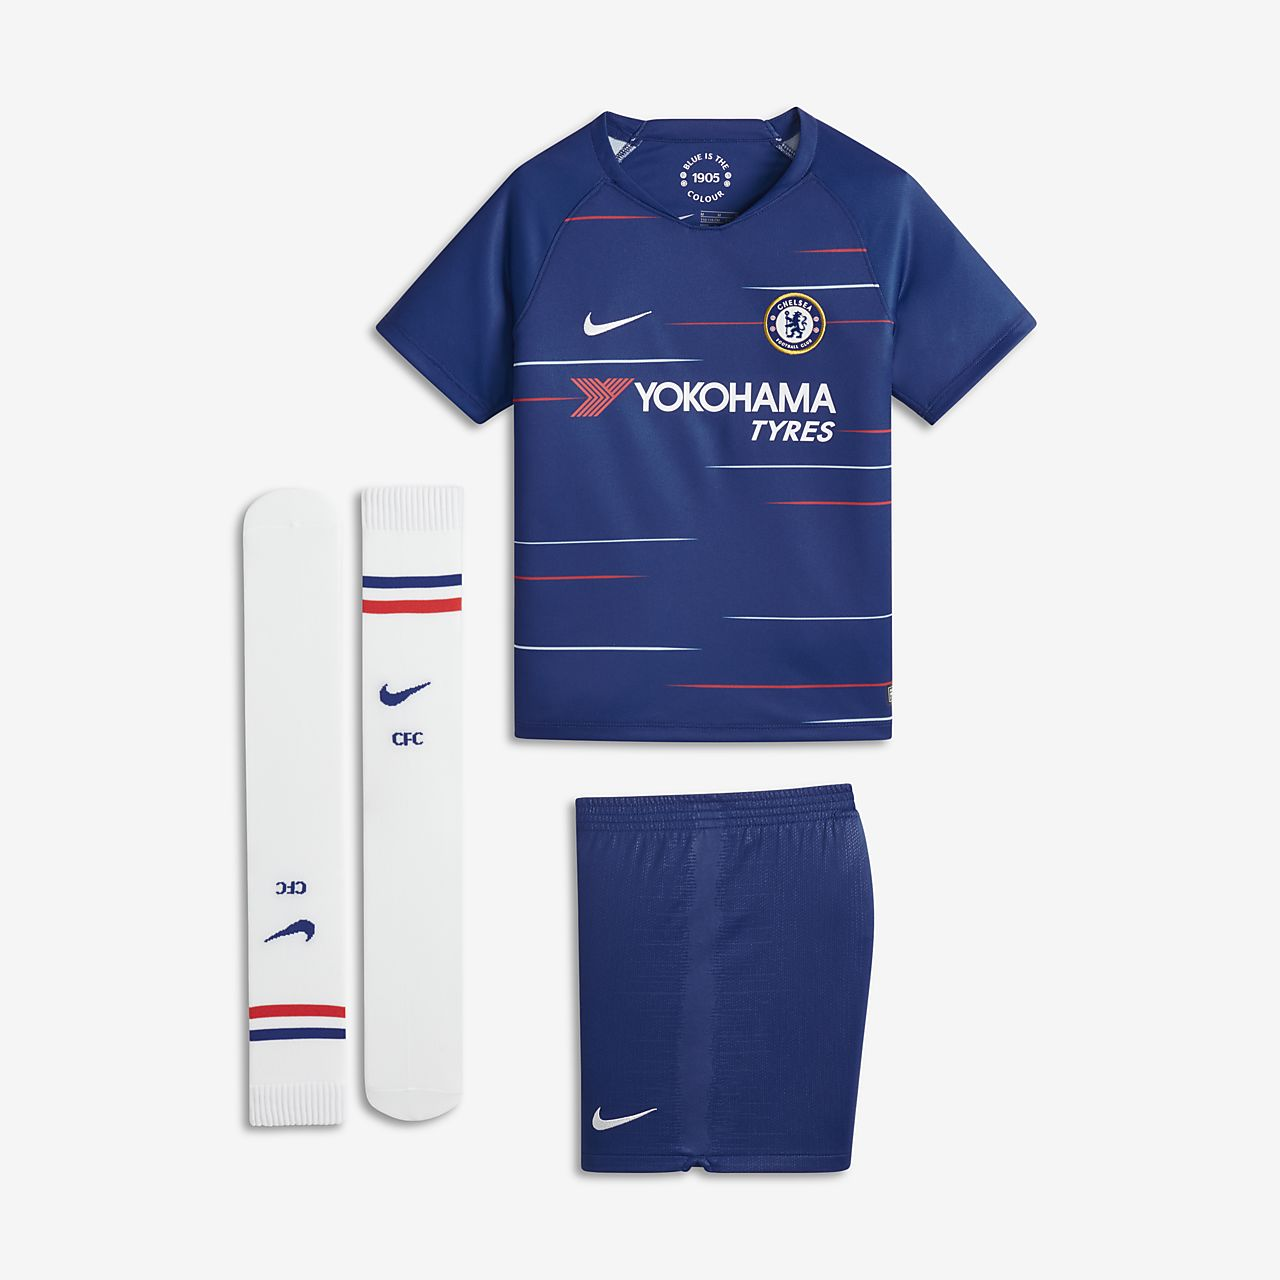 25a2e5896 2018 19 Chelsea FC Stadium Home Little Kids  Soccer Kit. Nike.com